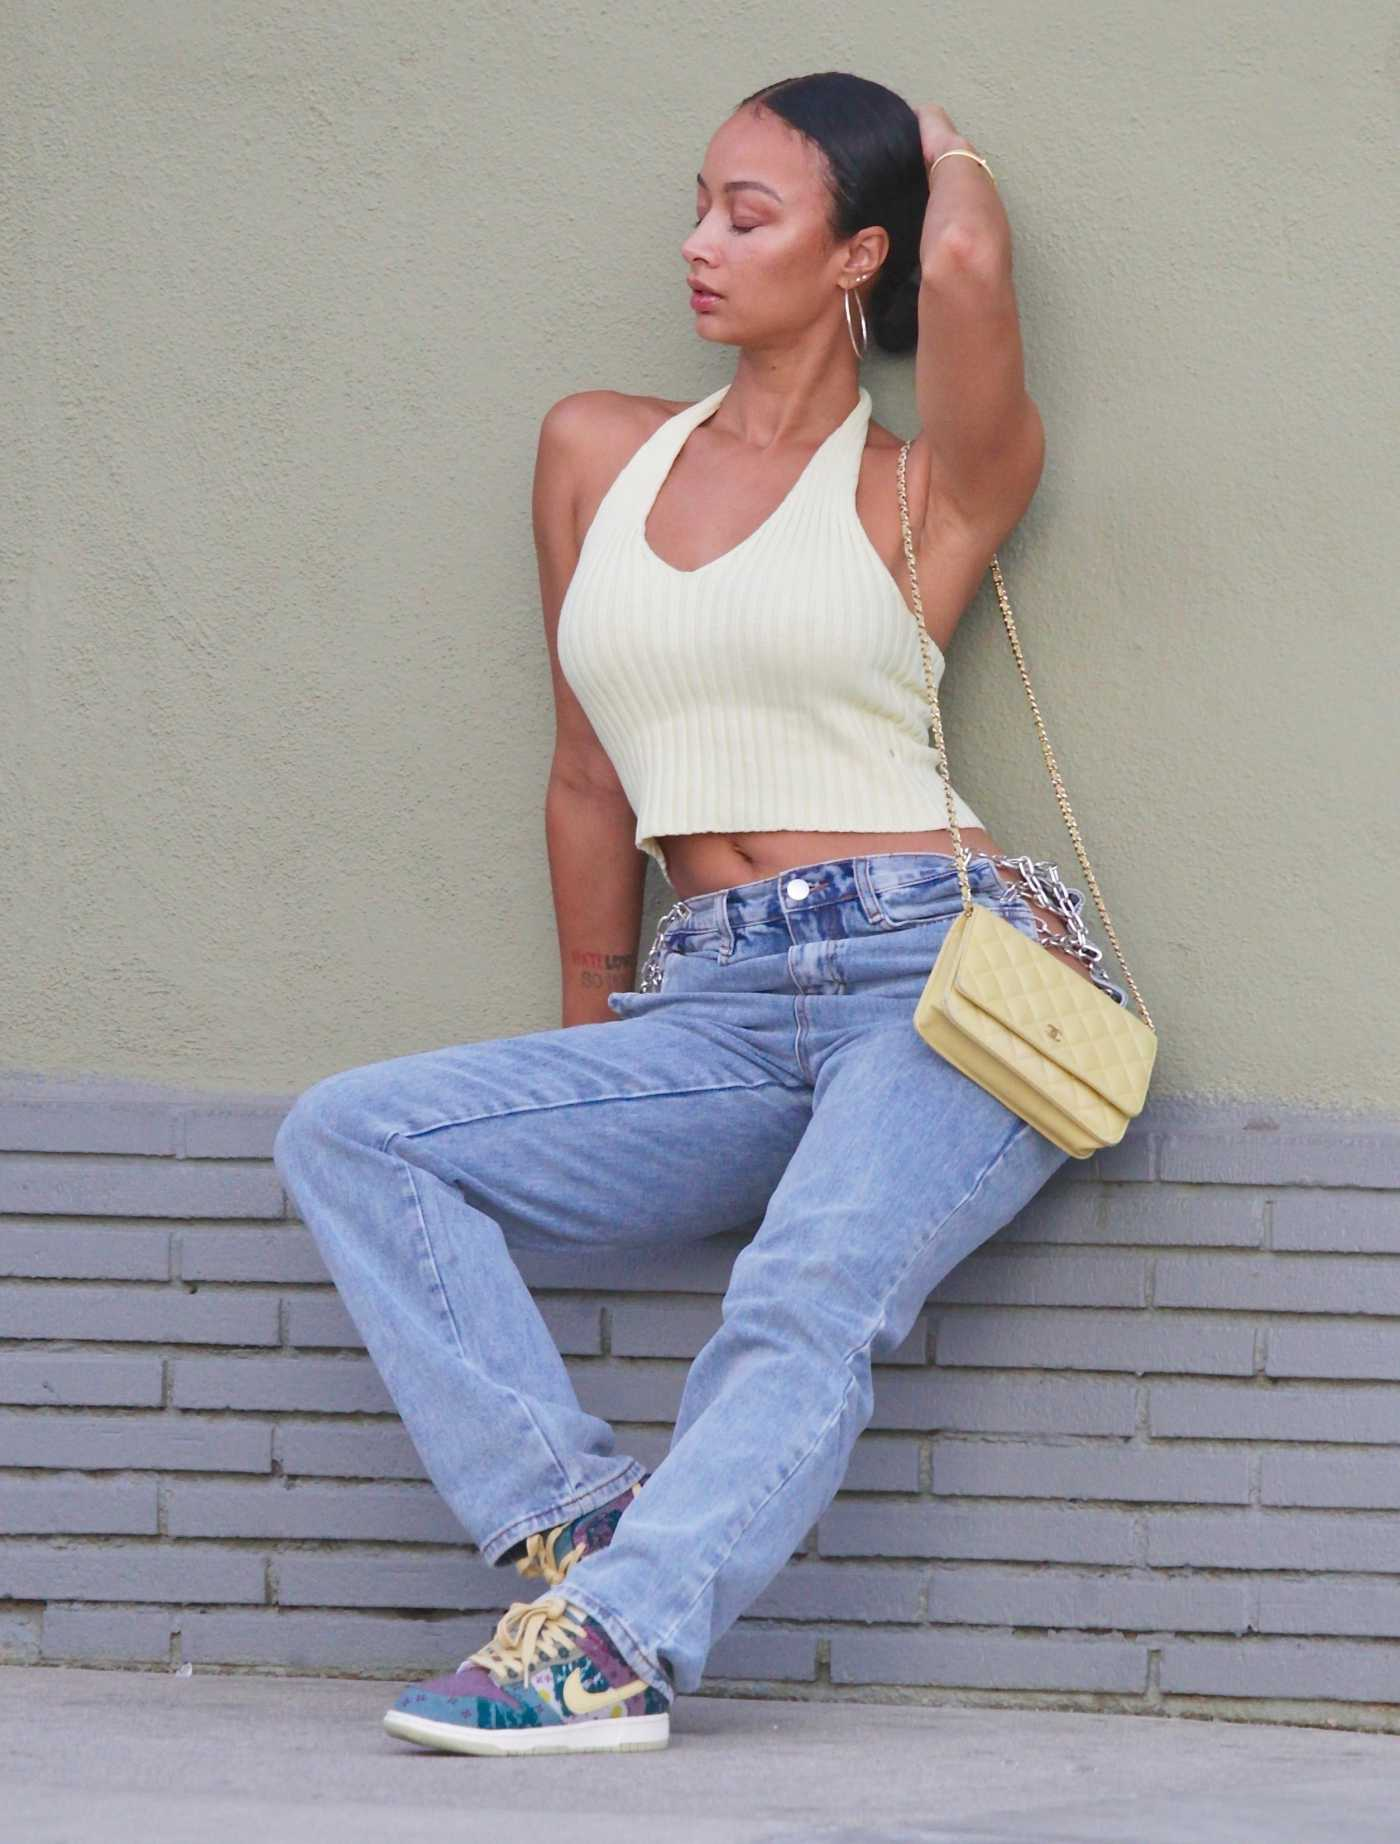 Draya Michele in a Beige Top Was Seen Out in Los Feliz 09/20/2020